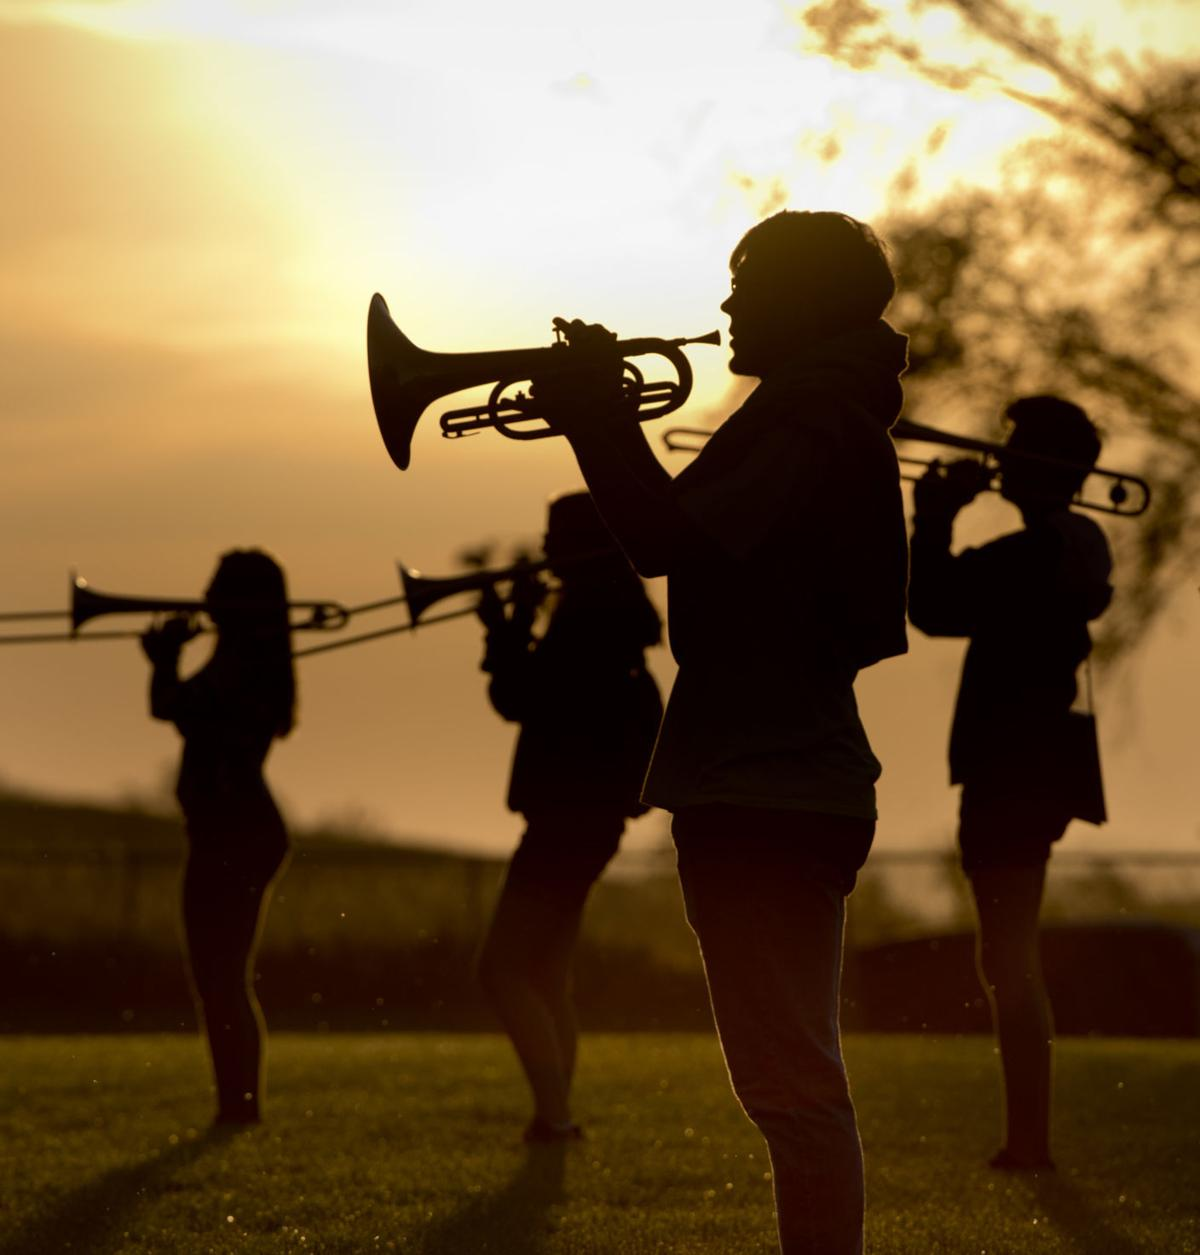 North High School marching band COVER PHOTO